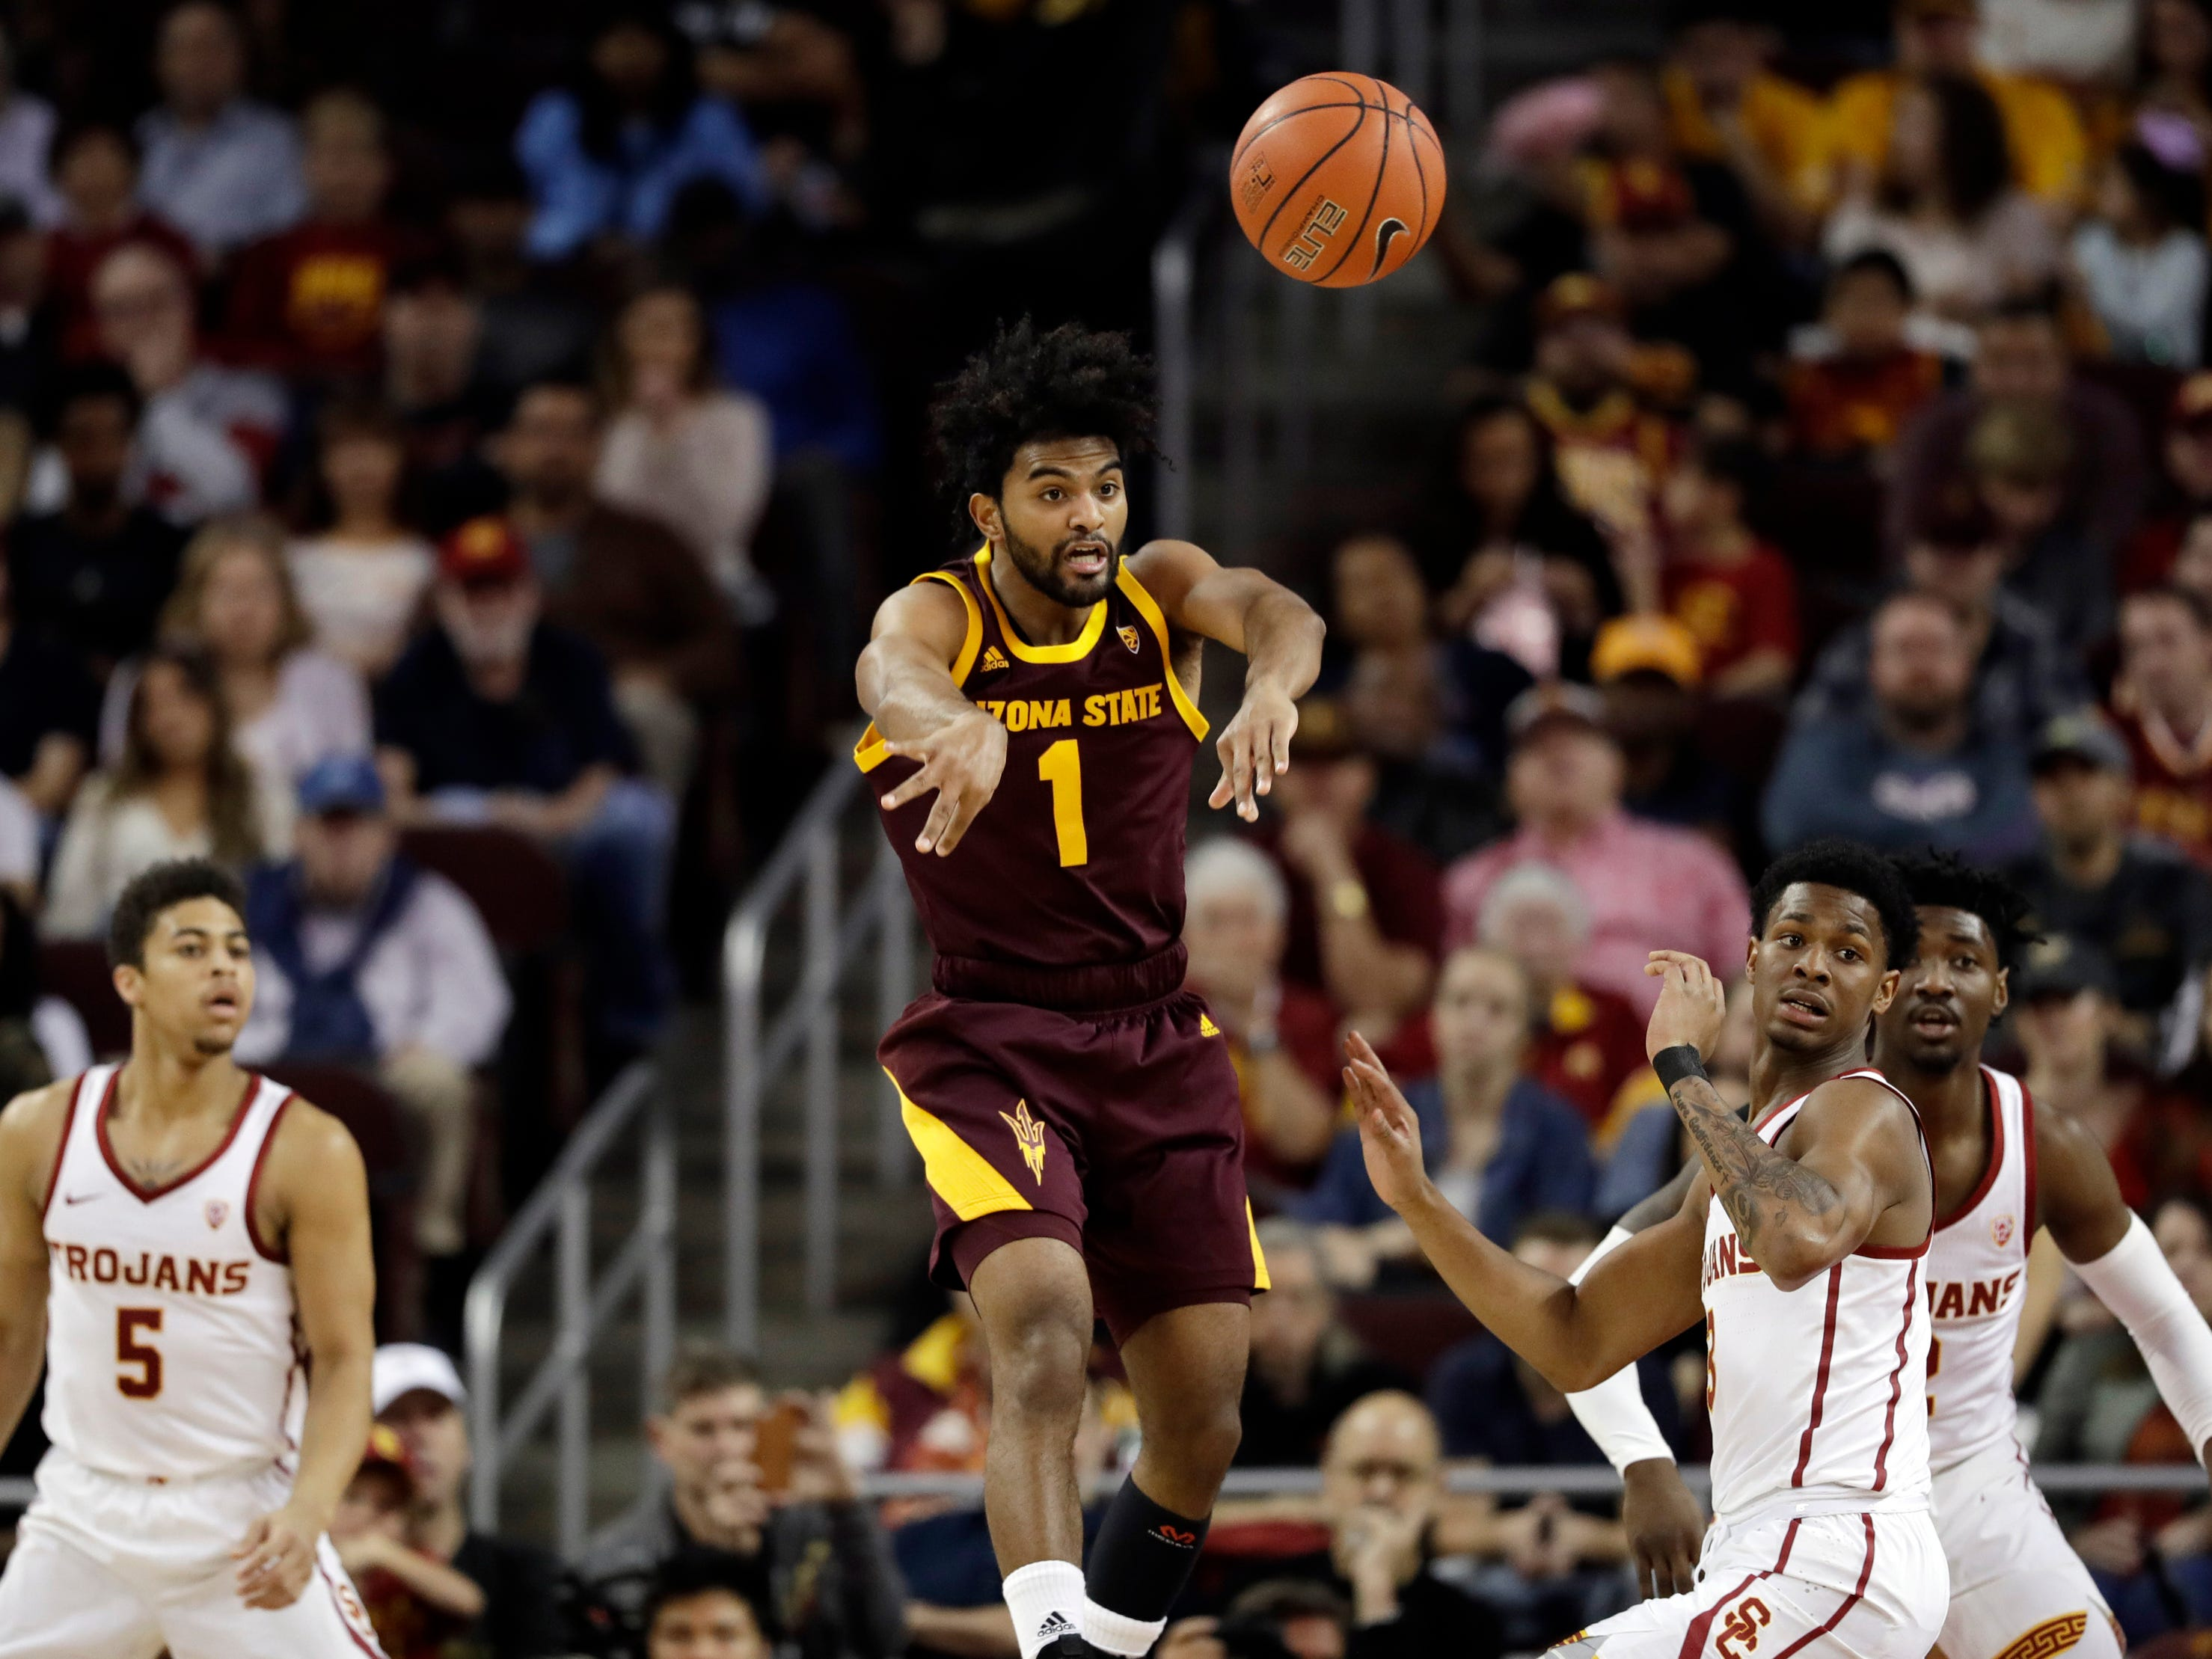 Arizona State guard Remy Martin (1) passes as he is pressured by Southern California defenders during the first half of an NCAA college basketball game Saturday, Jan. 26, 2019, in Los Angeles.